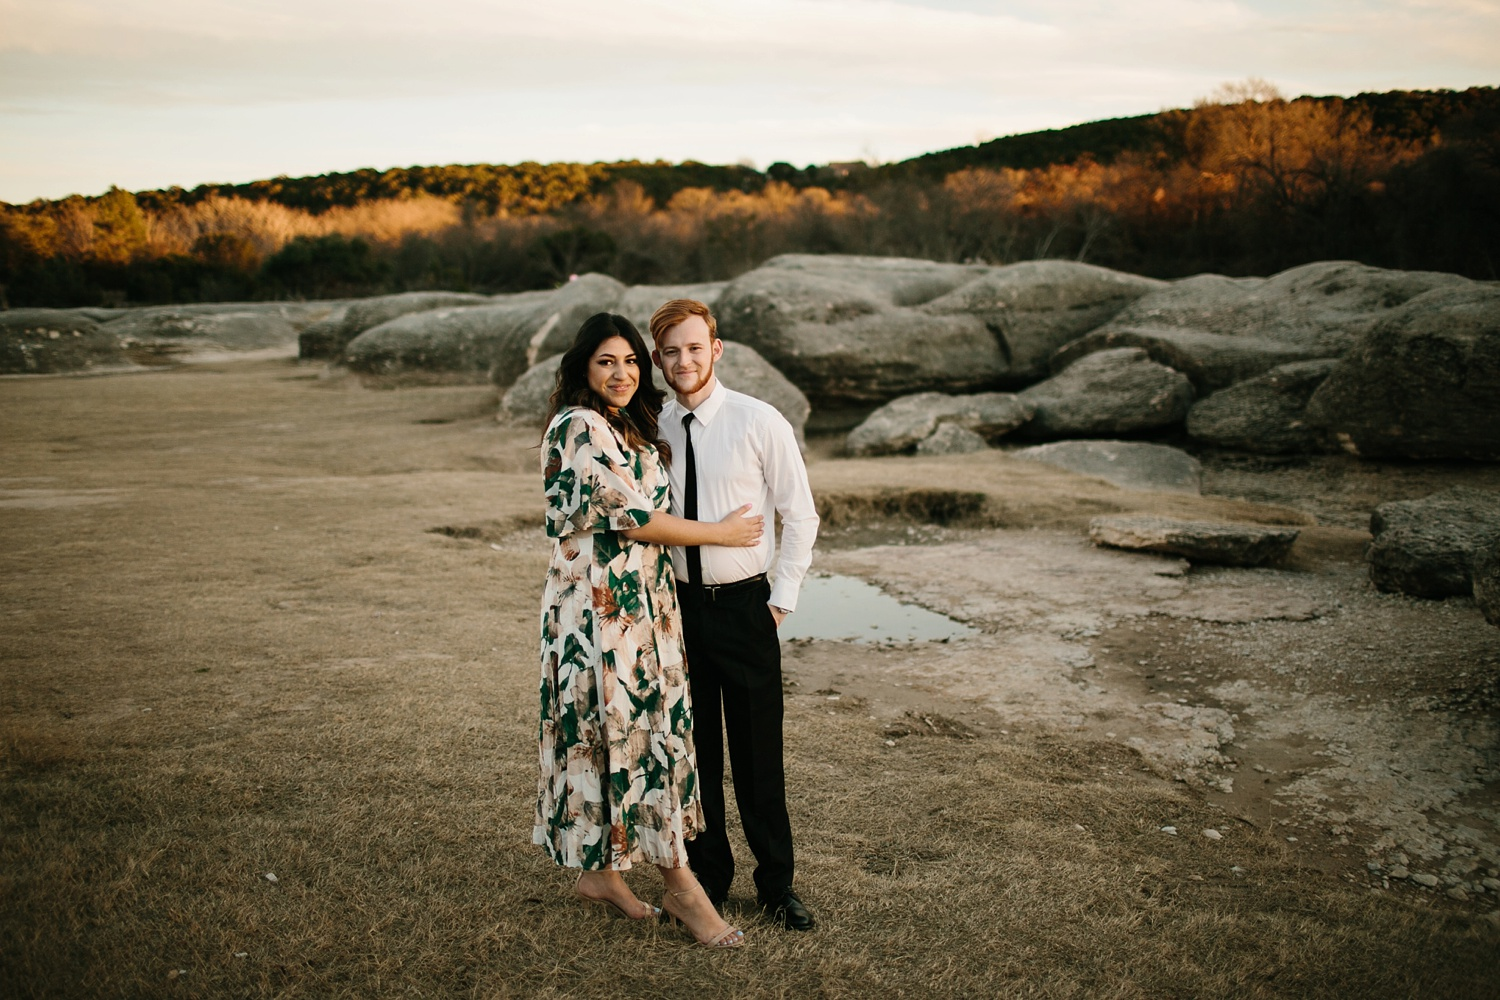 Grant + Lysette - floral dress engagement session by North Texas Wedding Photographer Rachel Meagan Photography077